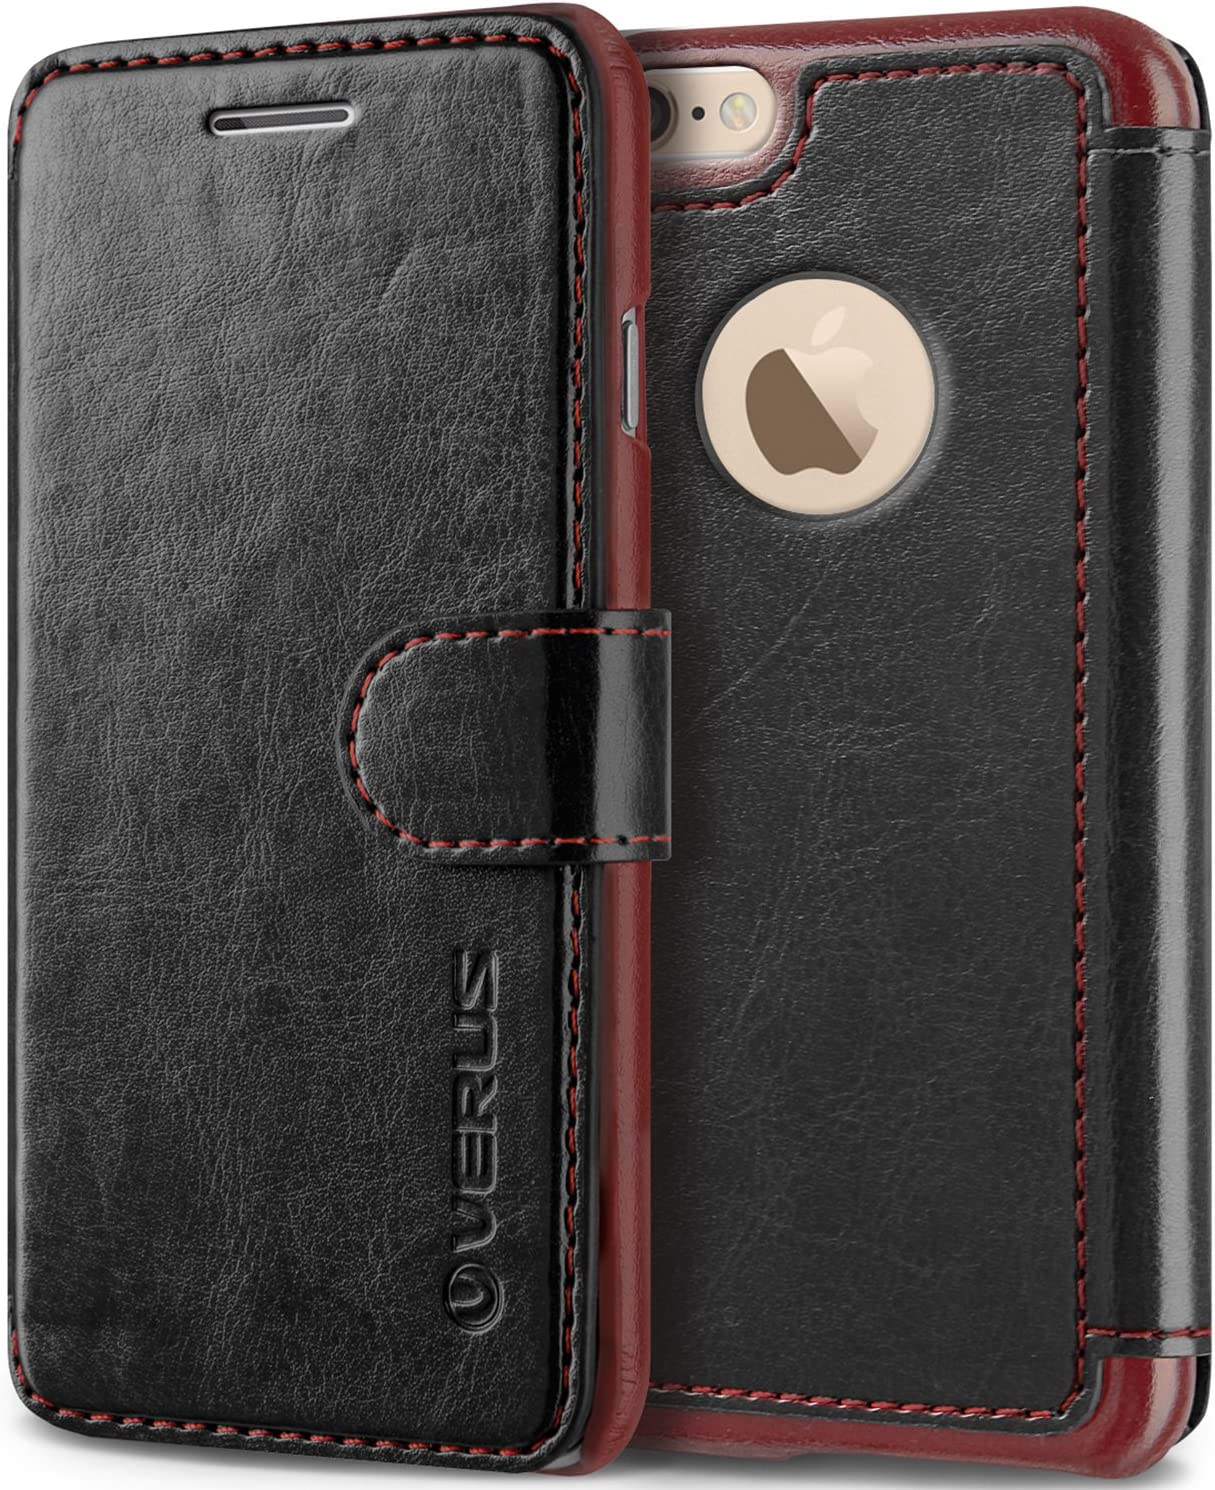 iPhone 6S Plus Case, Verus [Layered Dandy][Black] - [Premium Leather Wallet][Slim Fit] For Apple iPhone 6 6S Plus 5.5